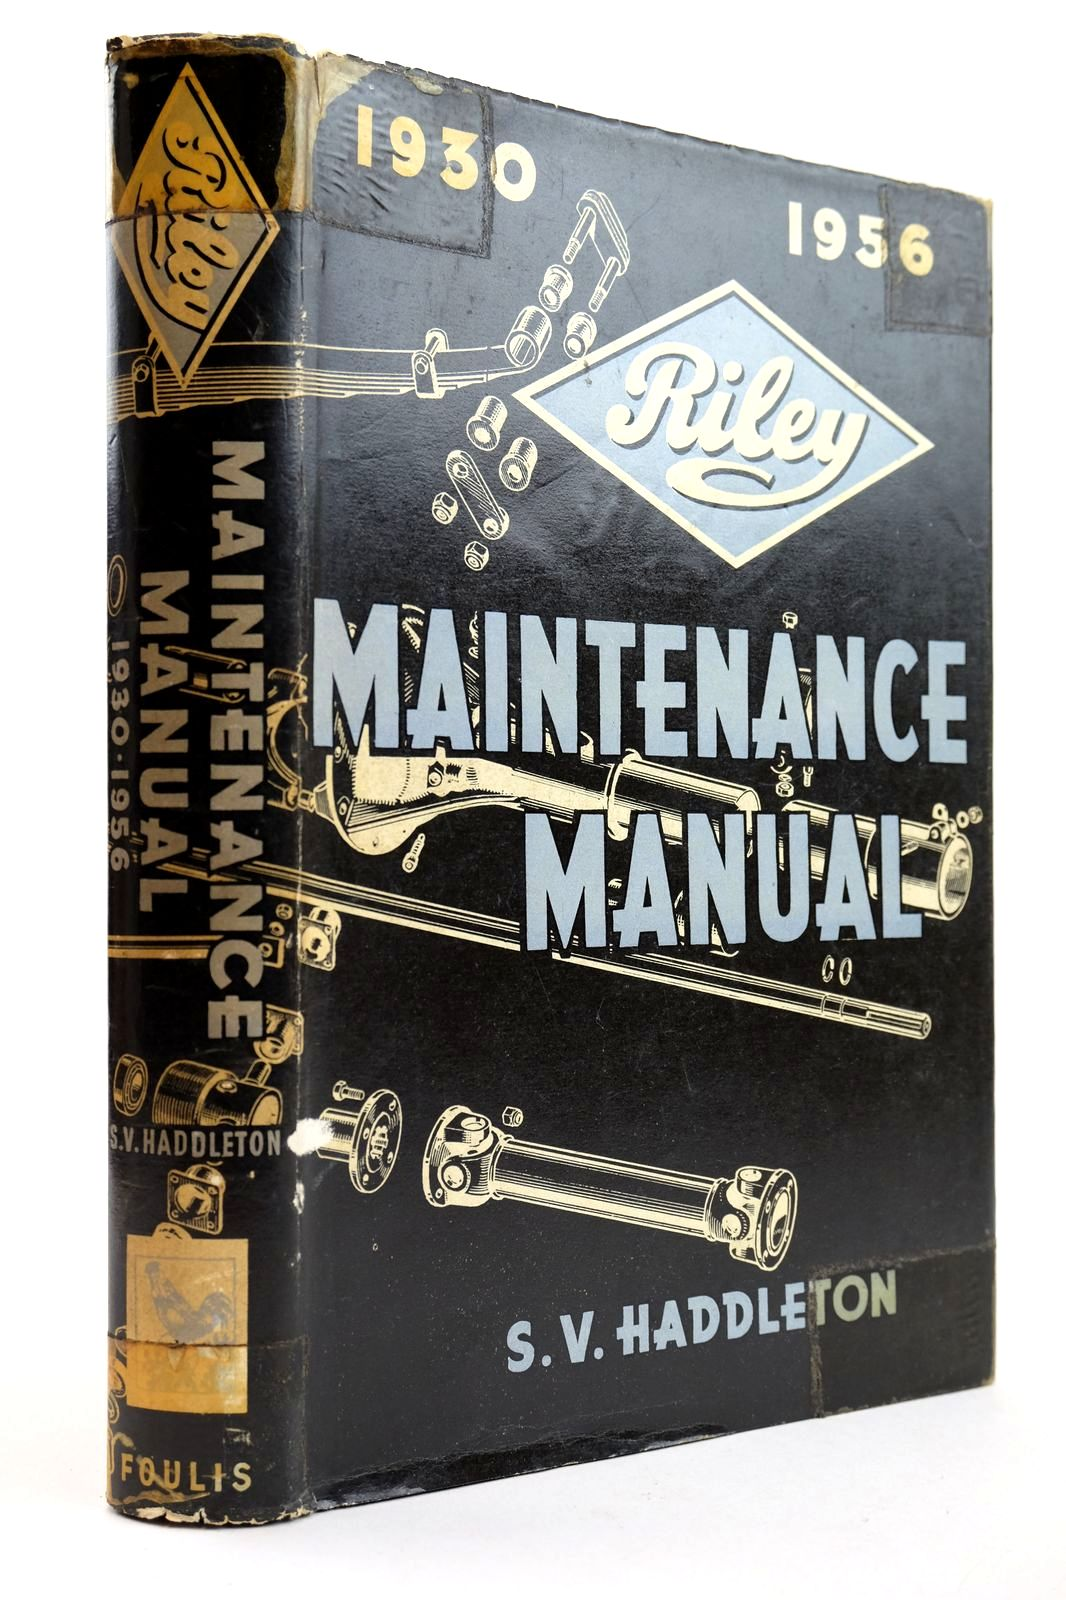 Photo of RILEY MAINTENANCE MANUAL 1930-1956- Stock Number: 2132621